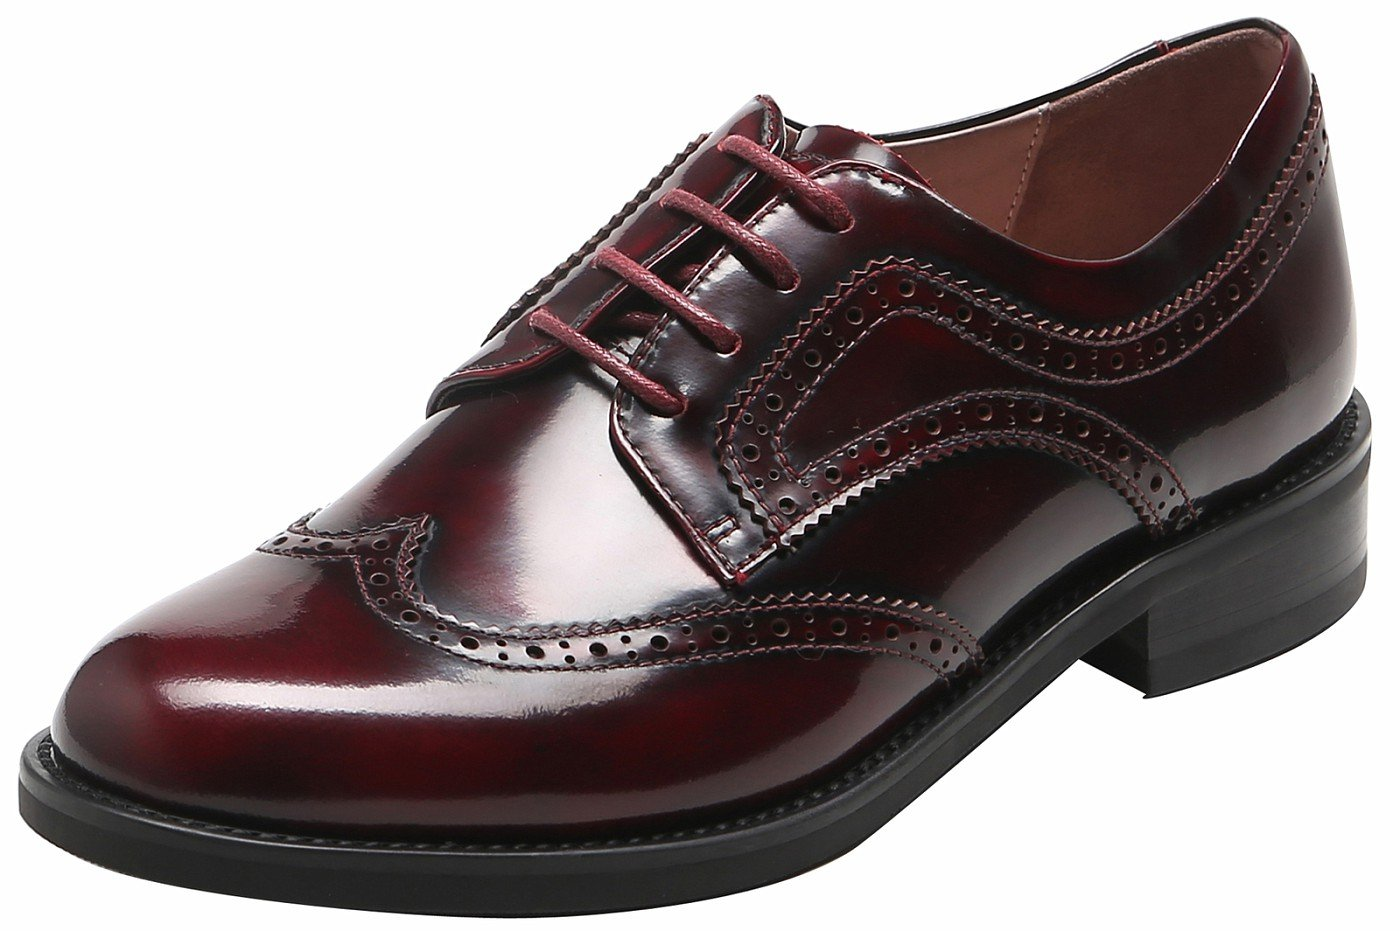 U-lite Women's Perforated Lace-up Wingtip Pure Color Leather Flat Oxfords Vintage Oxford Shoes Burgund-2 8